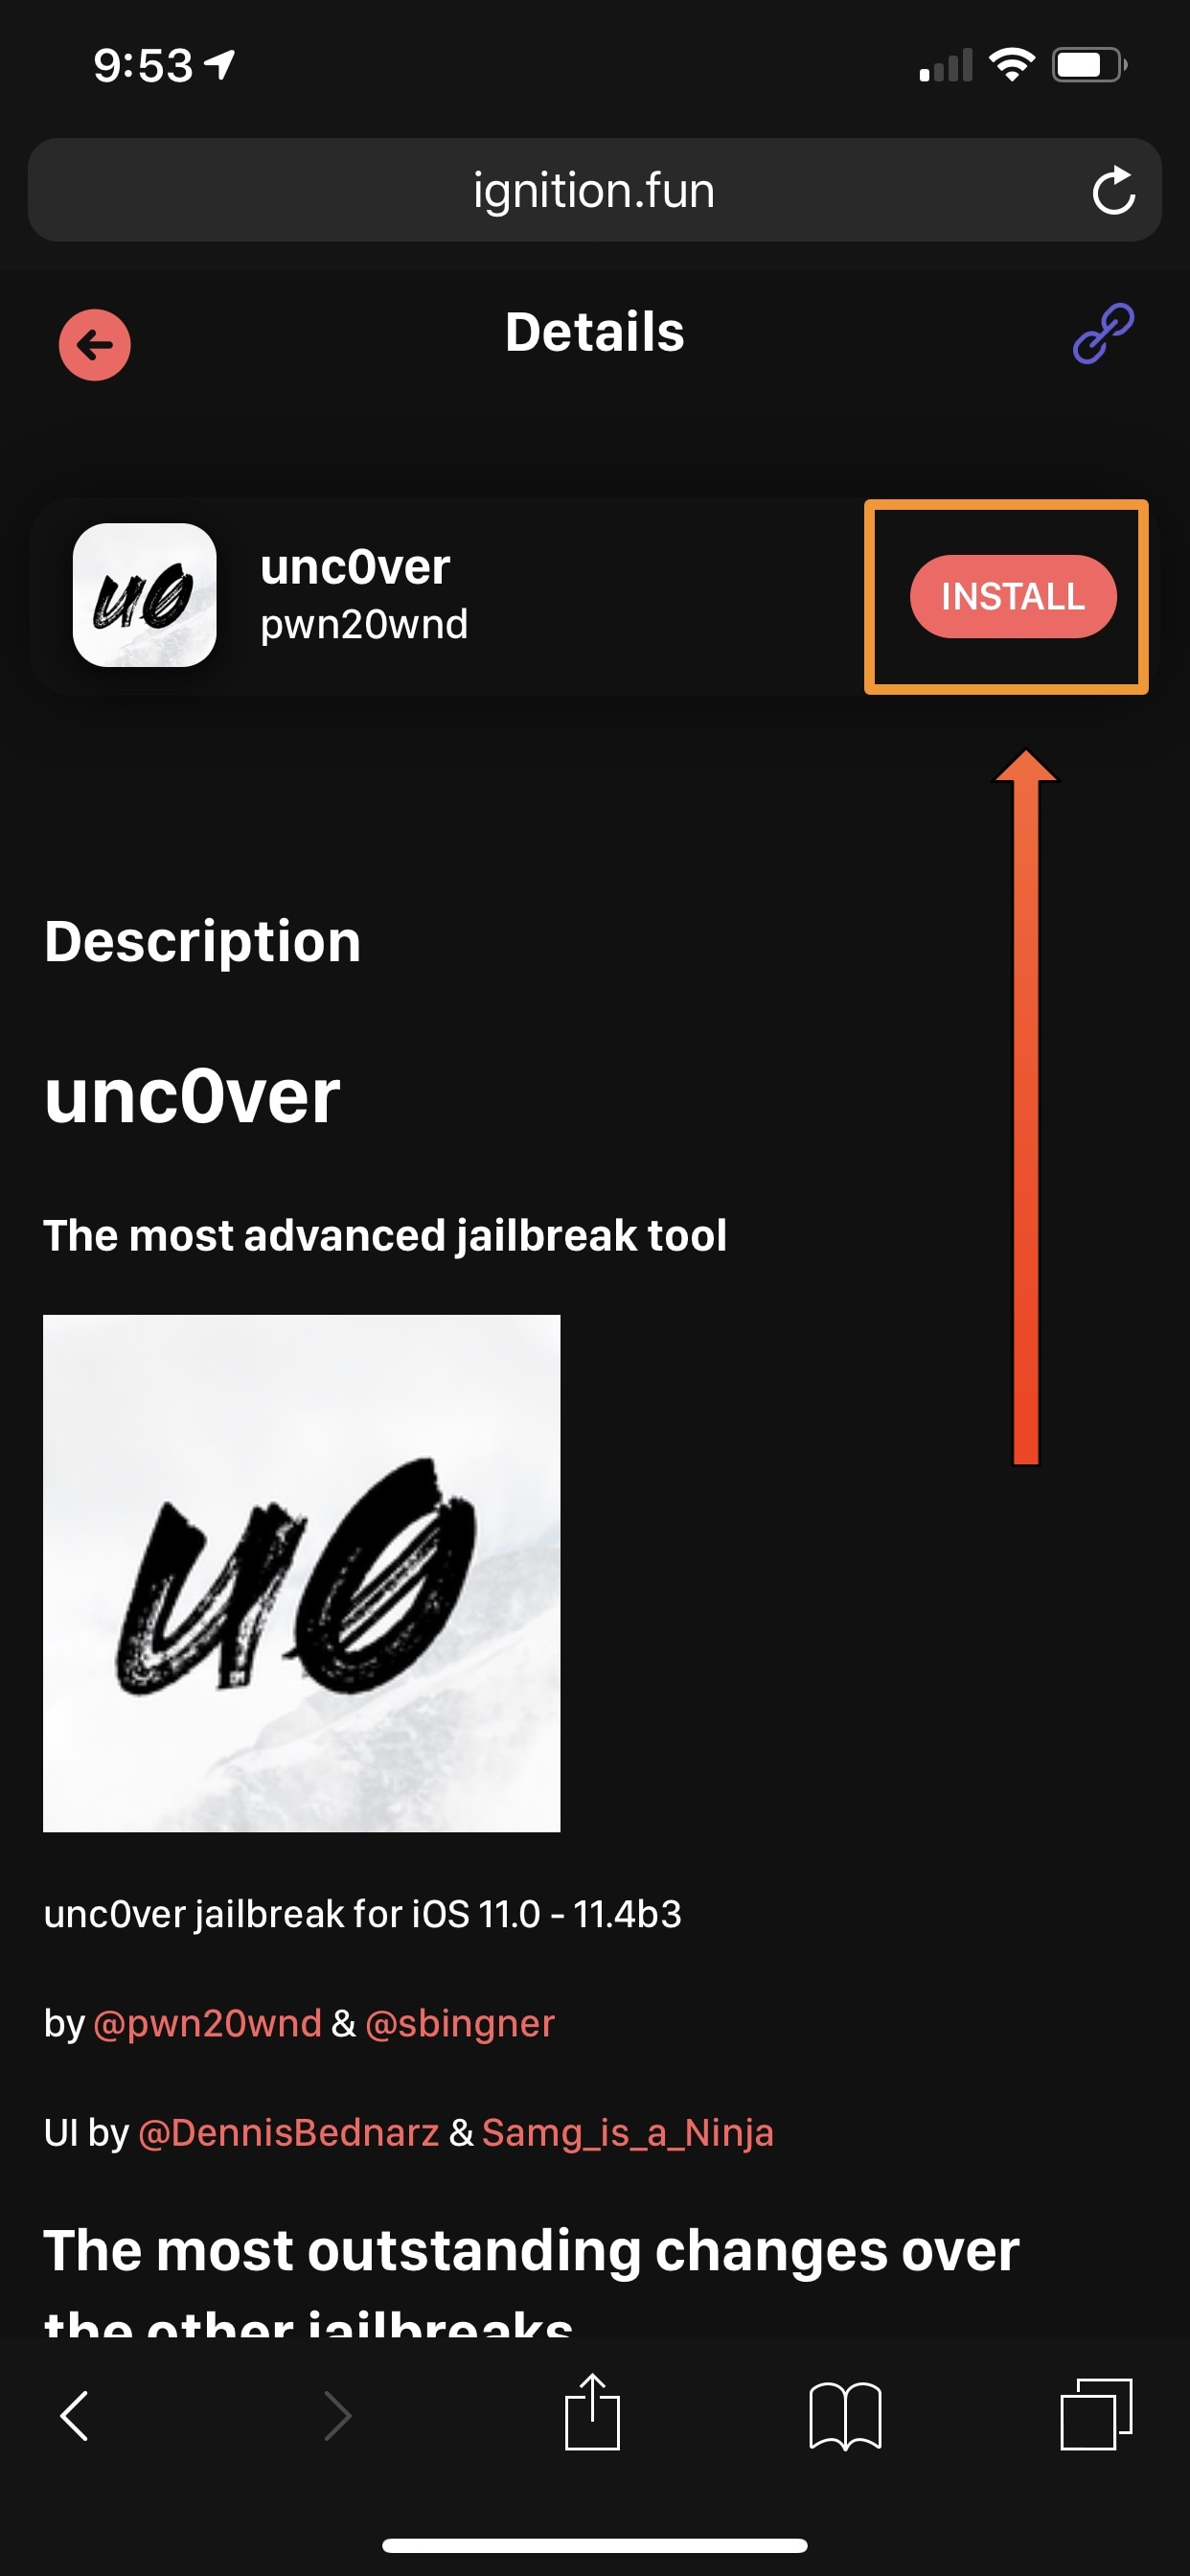 How to install the unc0ver jailbreak without a computer